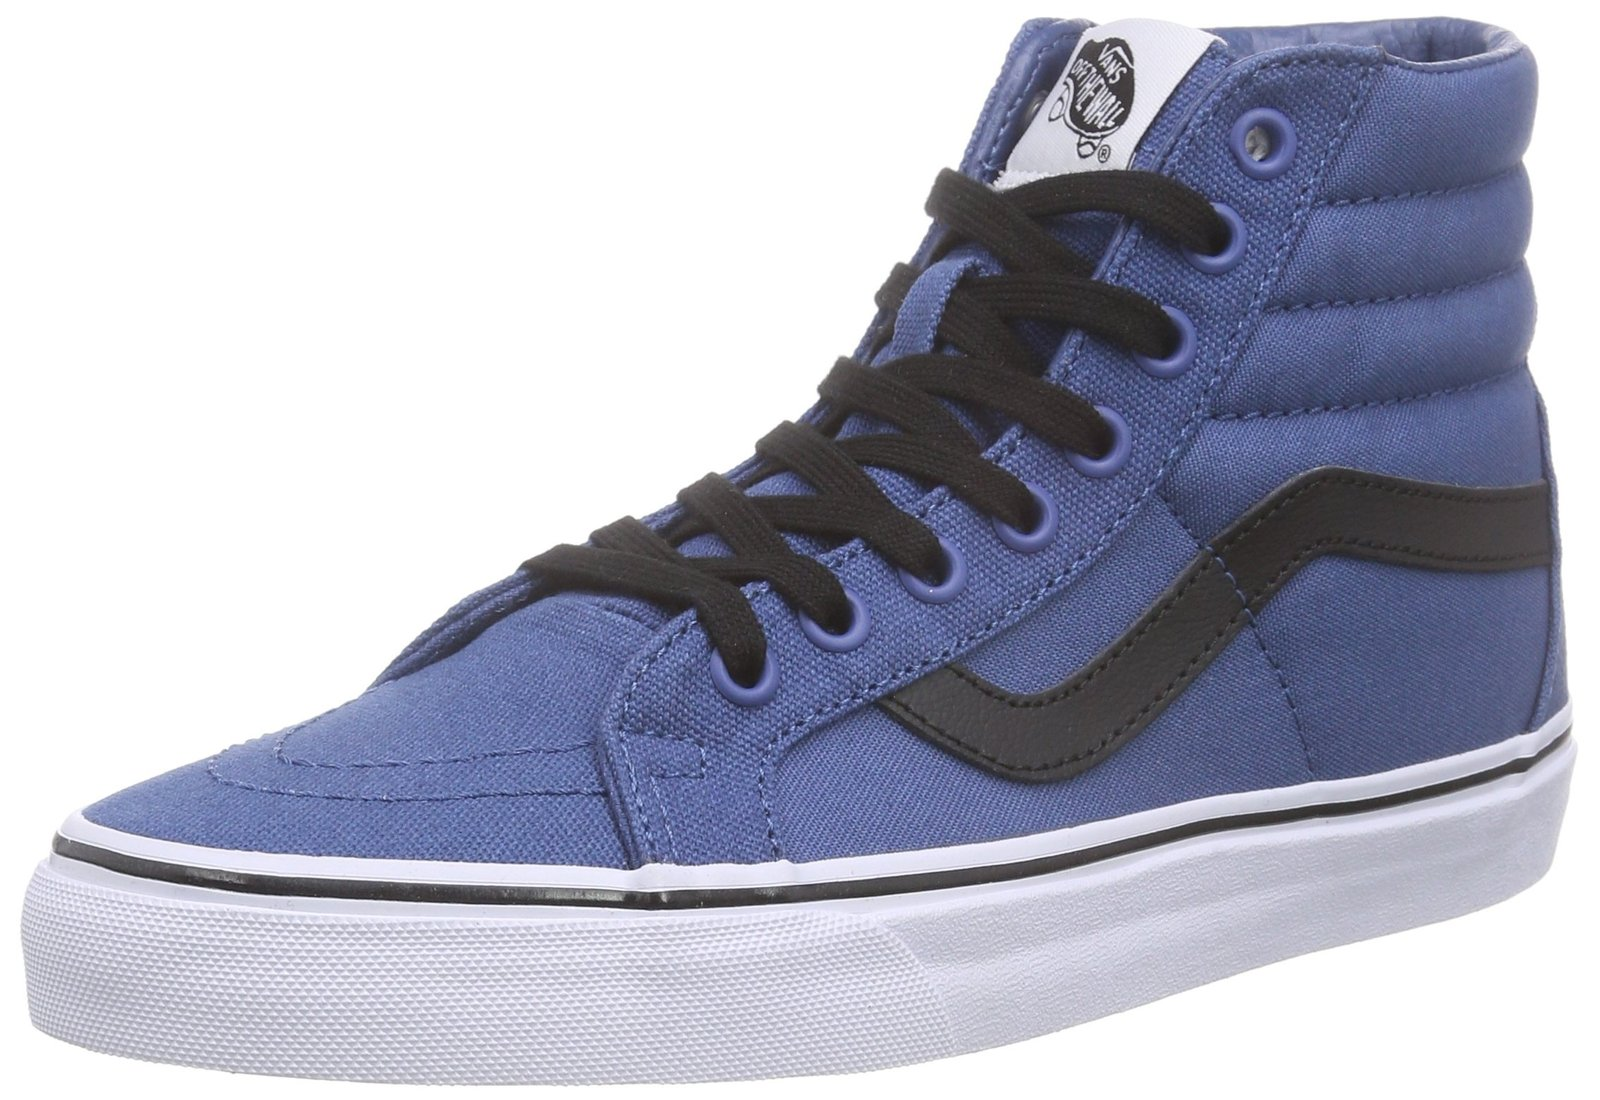 1745fcabbb Vans Unisex Shoes SK8-HI Reissue Canvas Navy and 26 similar items.  81eszjjheul